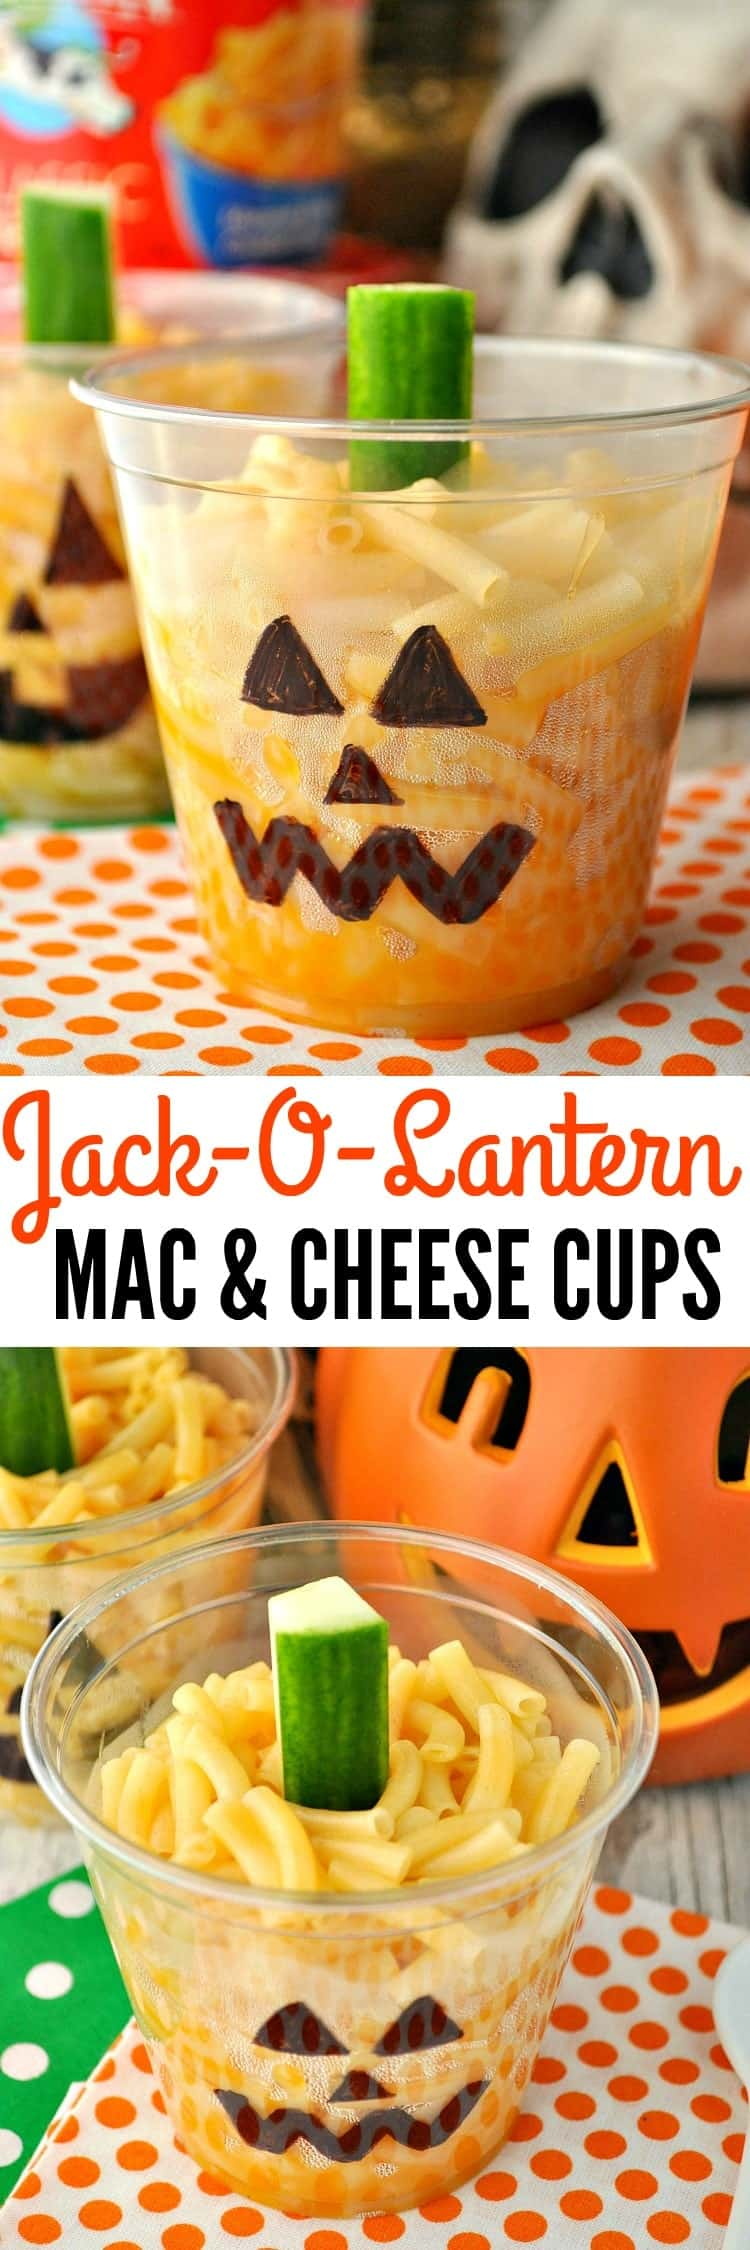 Jack-O-Lantern Mac & Cheese Cups are a fun and easy Halloween lunch, dinner, or party food for kids!